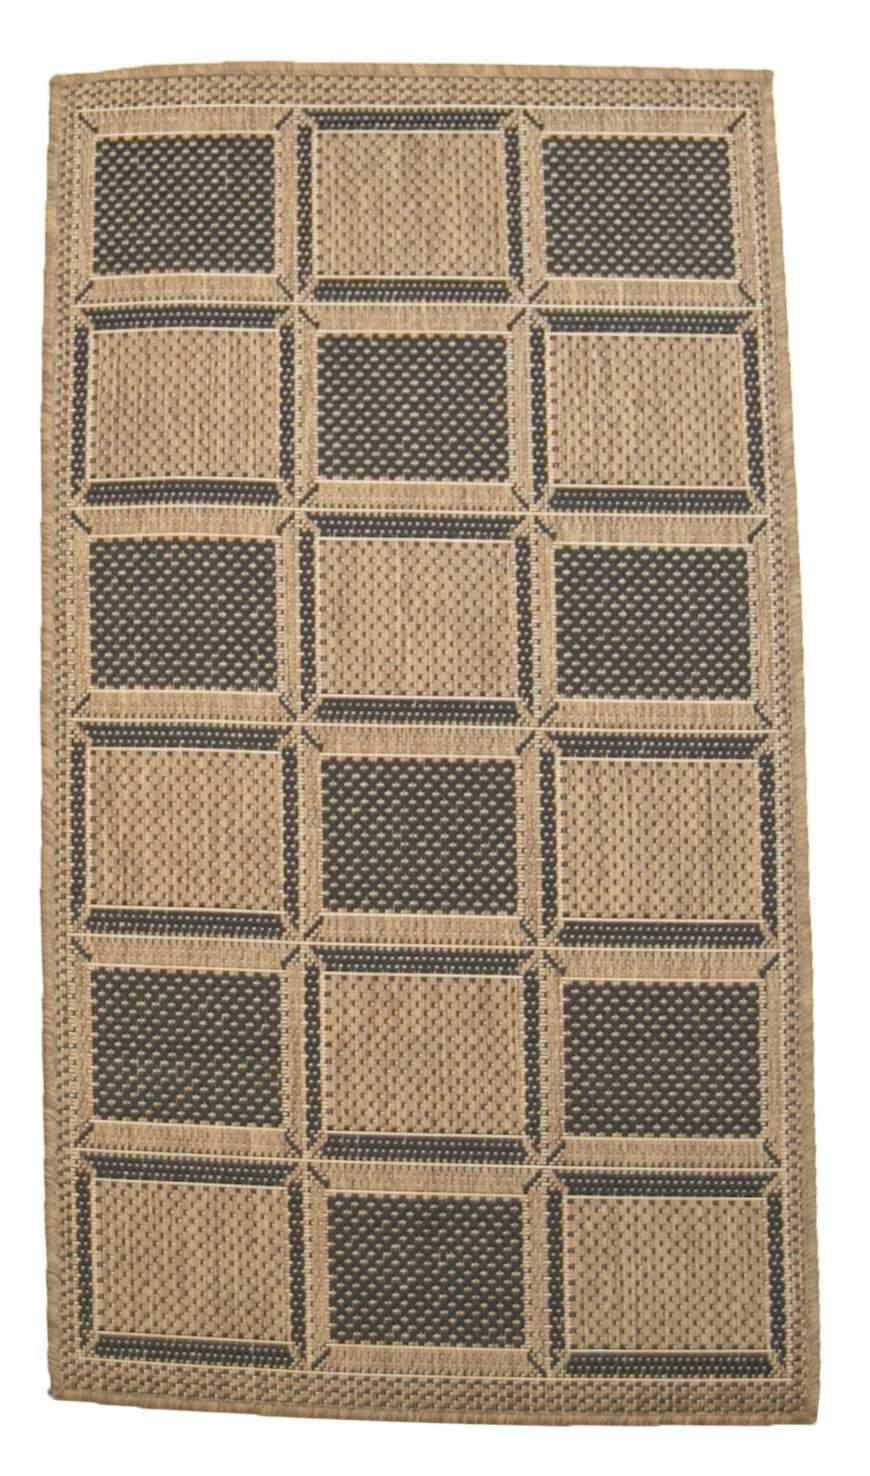 2' x 4' Recife Square Patterned Indoor Outdoor Small Area Runner